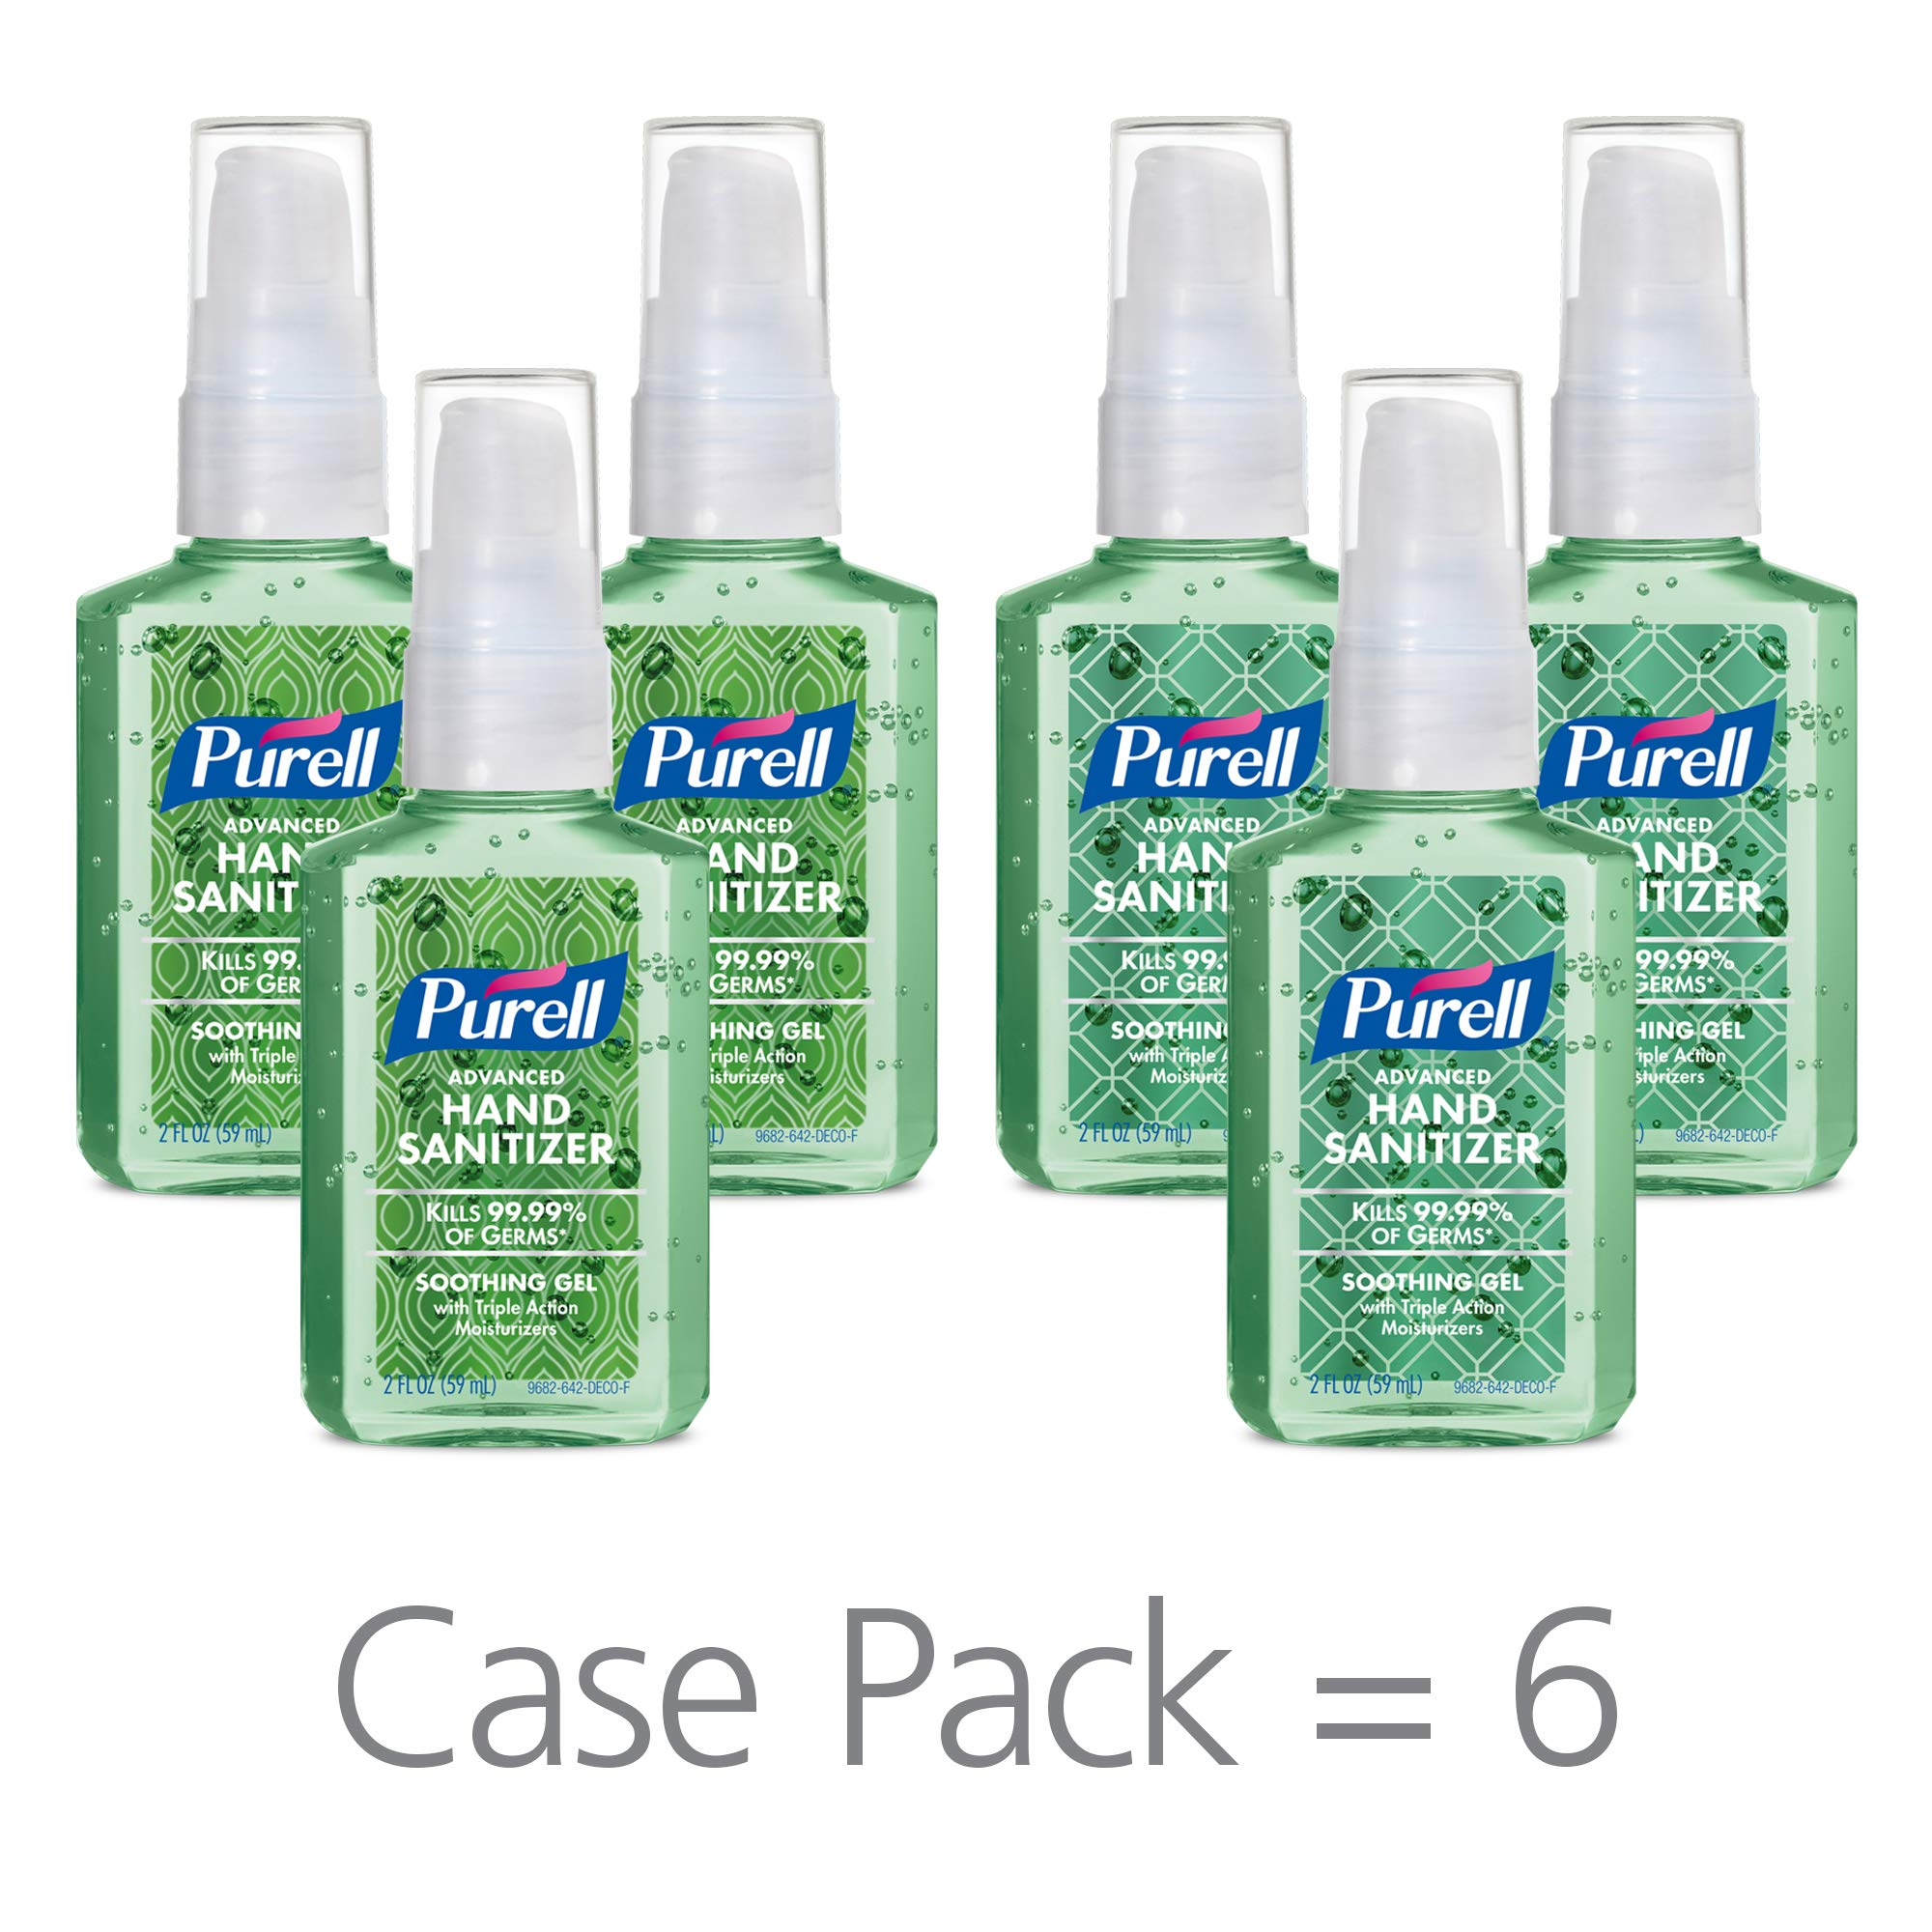 PURELL Advanced Hand Sanitizer Soothing Gel Metallic Design Series, Fresh scent, with Aloe and Vitamin E - 2 fl oz Pump Bottle (Pack of 6) - 9682-04-ECDECO by Purell